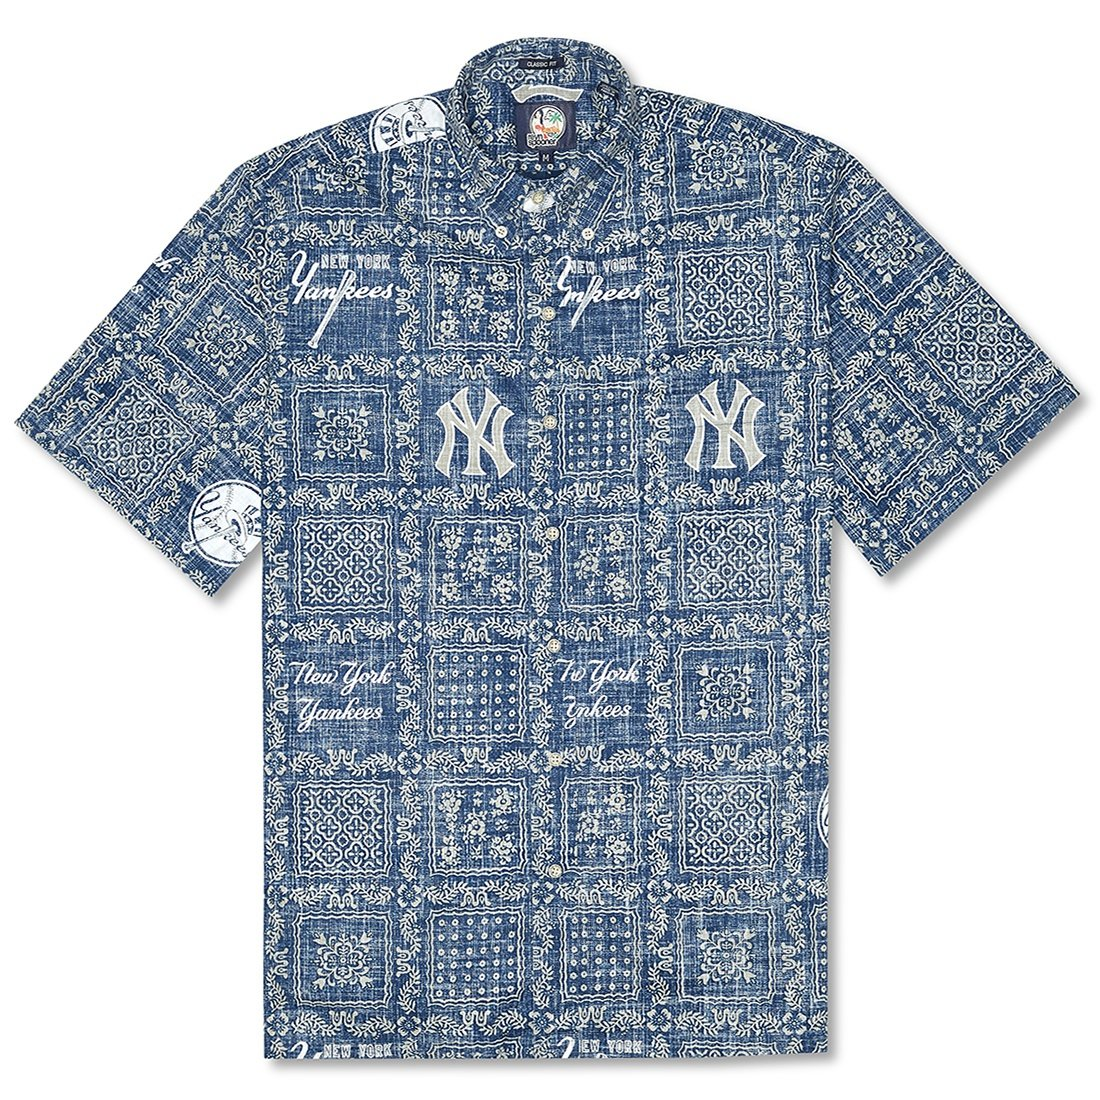 YANKEES LAHAINA / WEEKEND WASH CLASSIC FIT - Zoomed